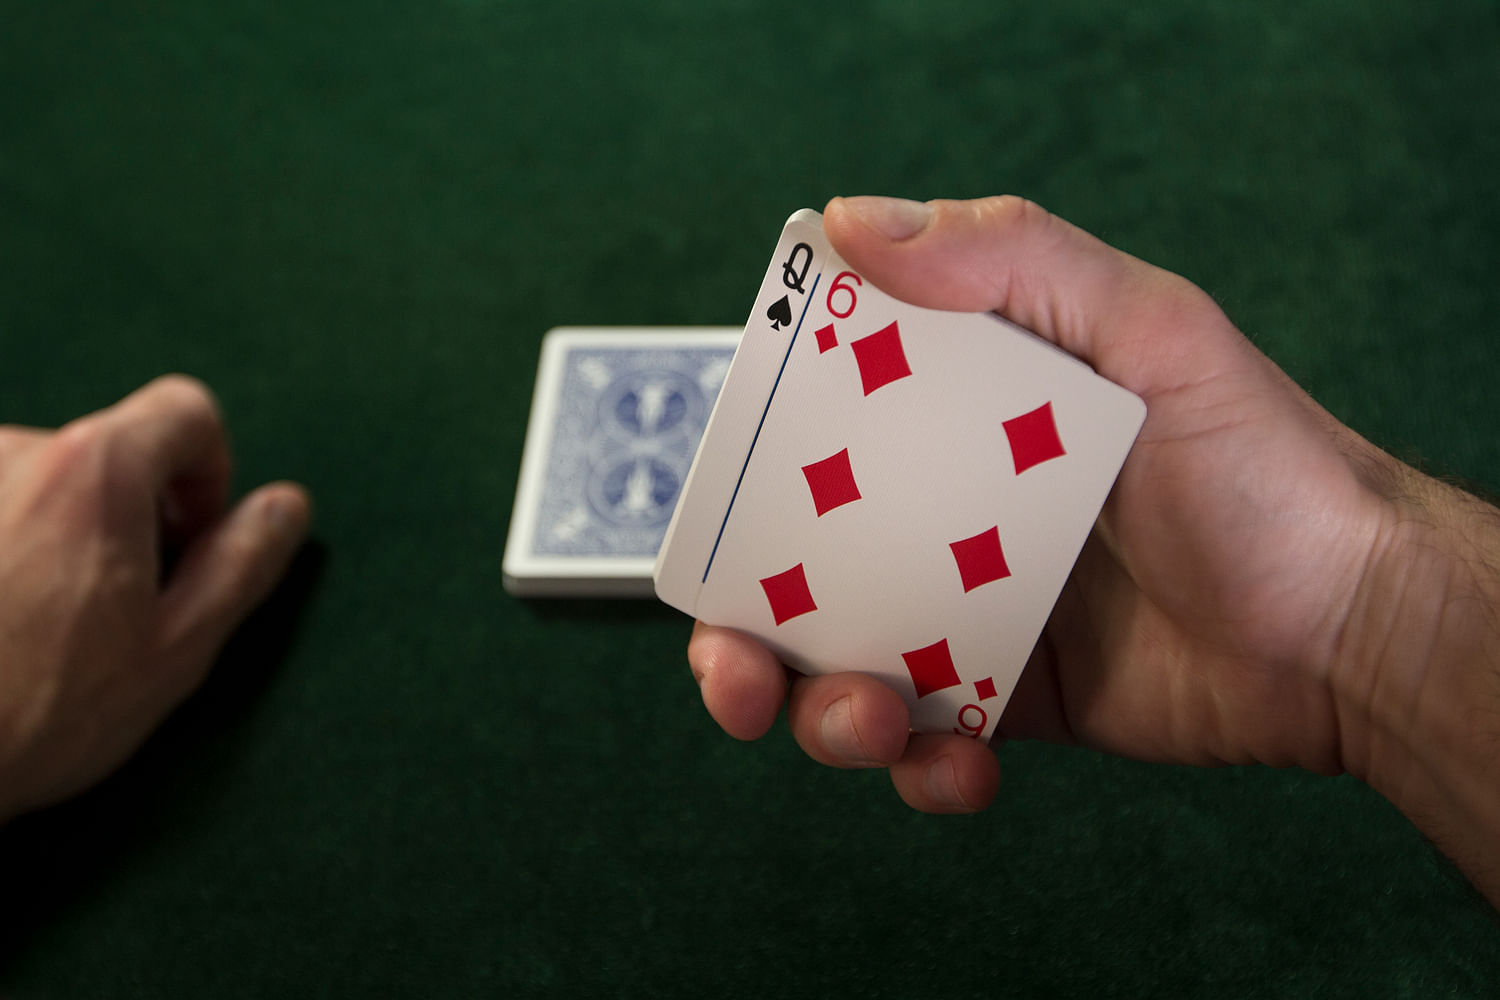 Peeking a card, a common method used by card cheats